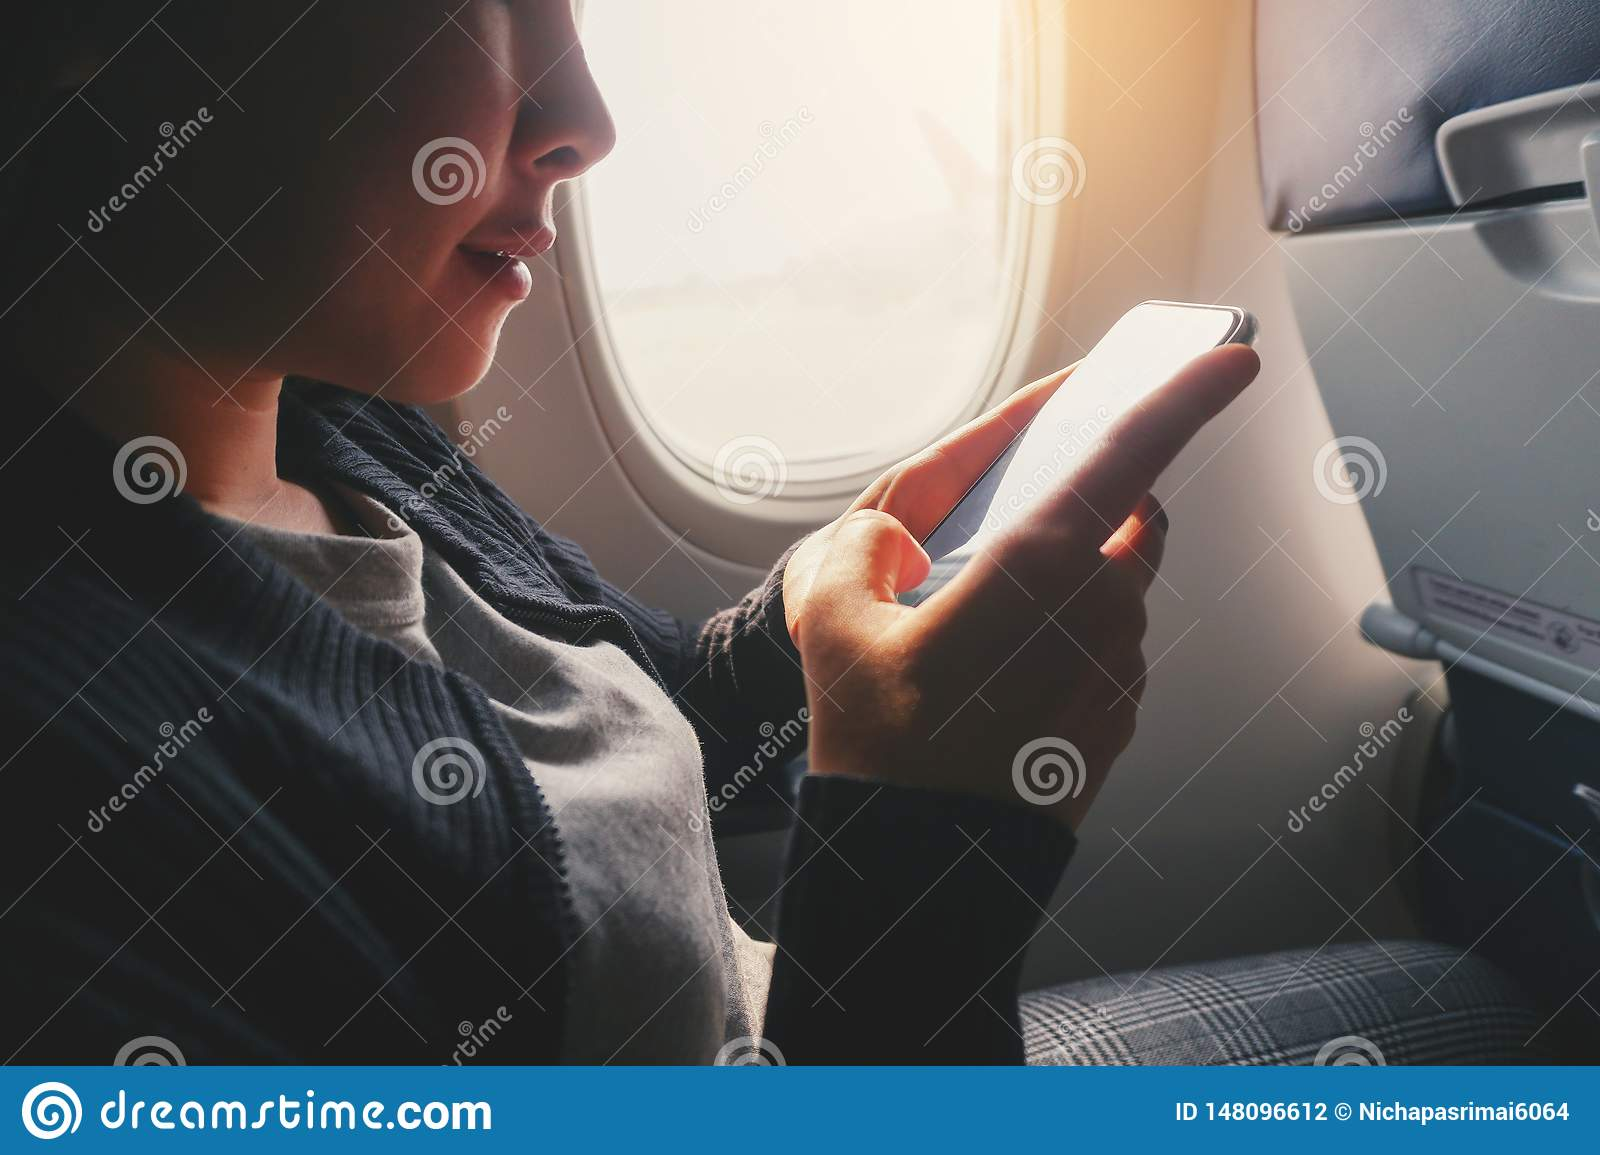 Tourist Asian woman sitting near airplane window and using Smart phone during flight